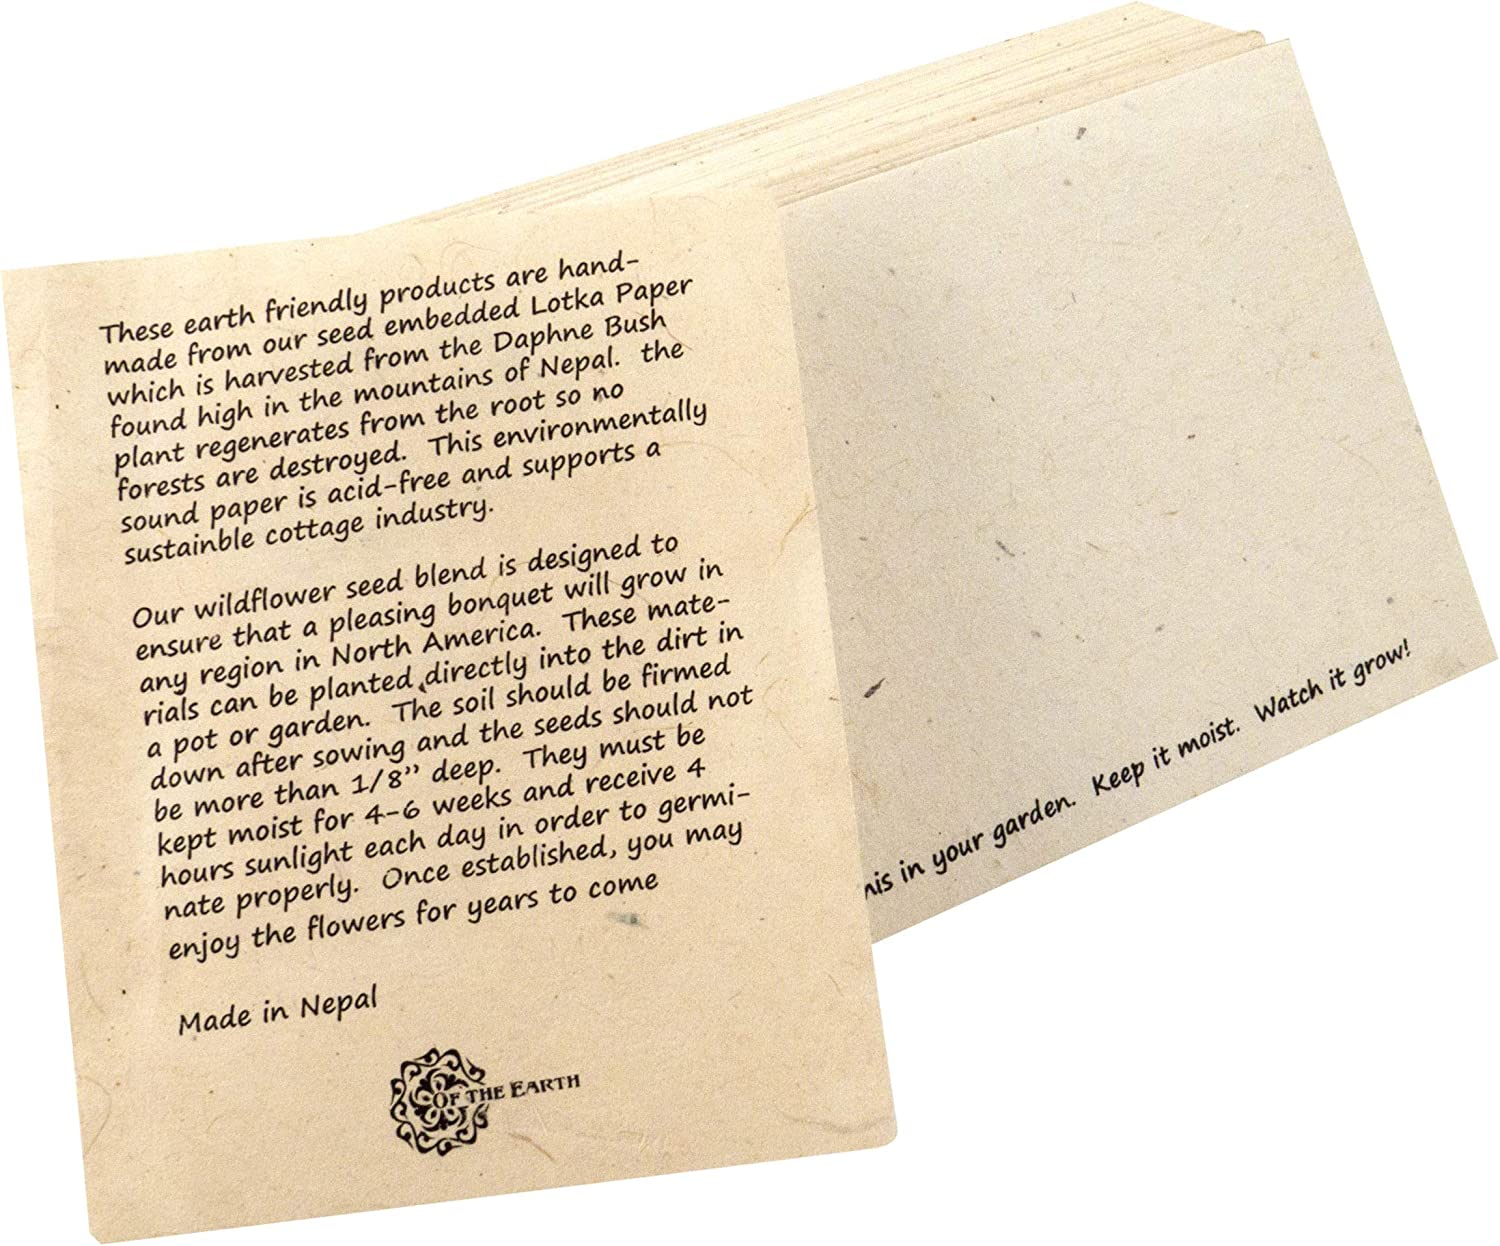 Of The Earth seeded plantable paper make great eco friendly wedding invitations